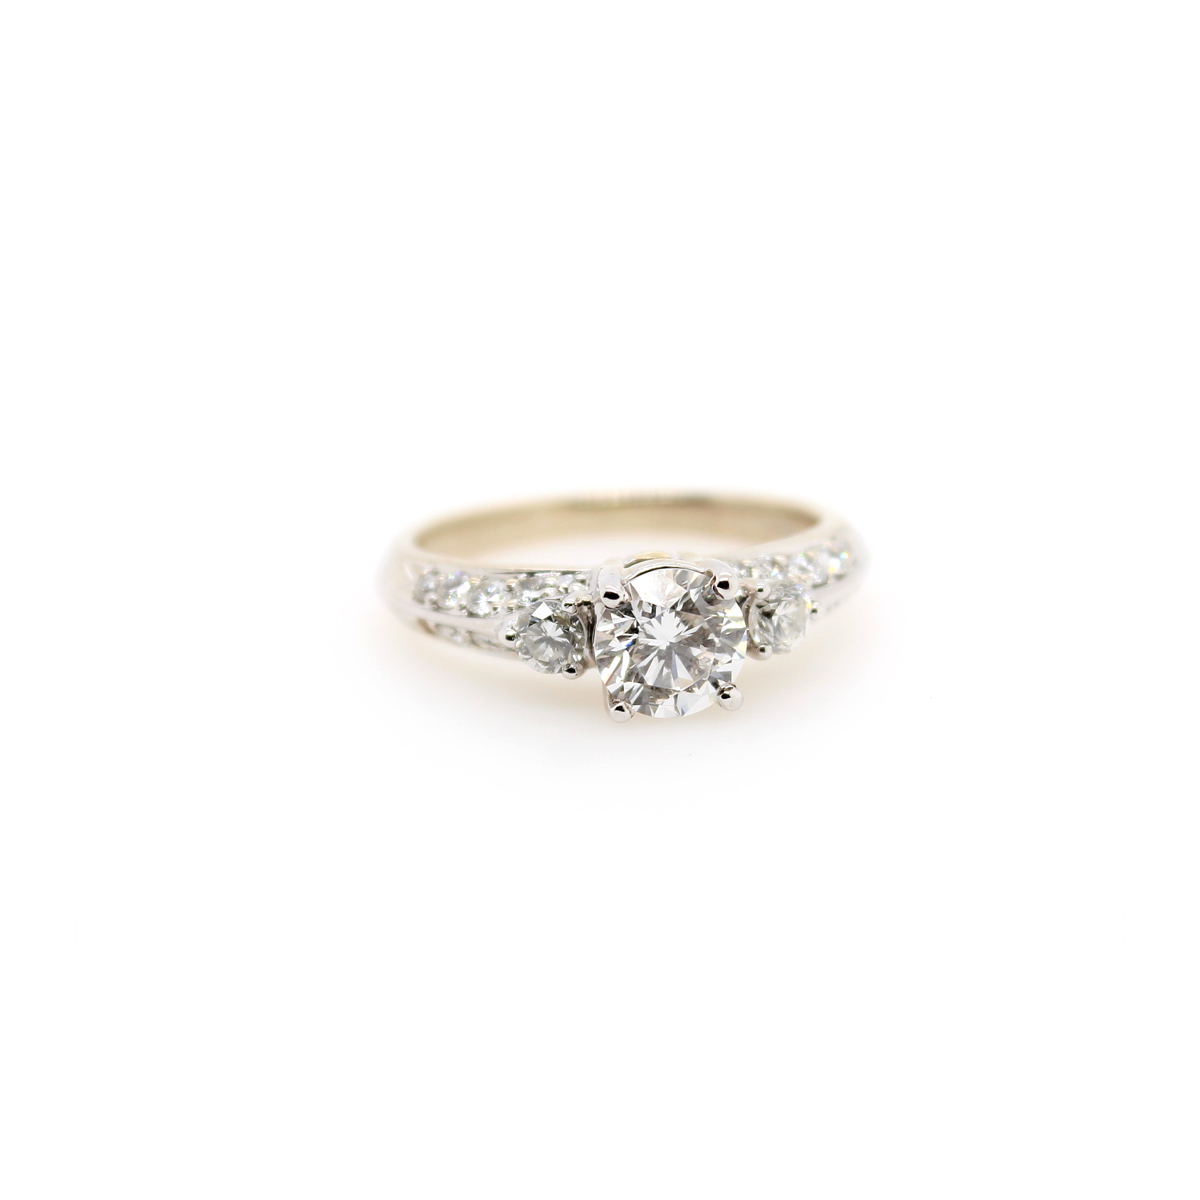 Vintage EGL Certified Diamond Bridal Ring